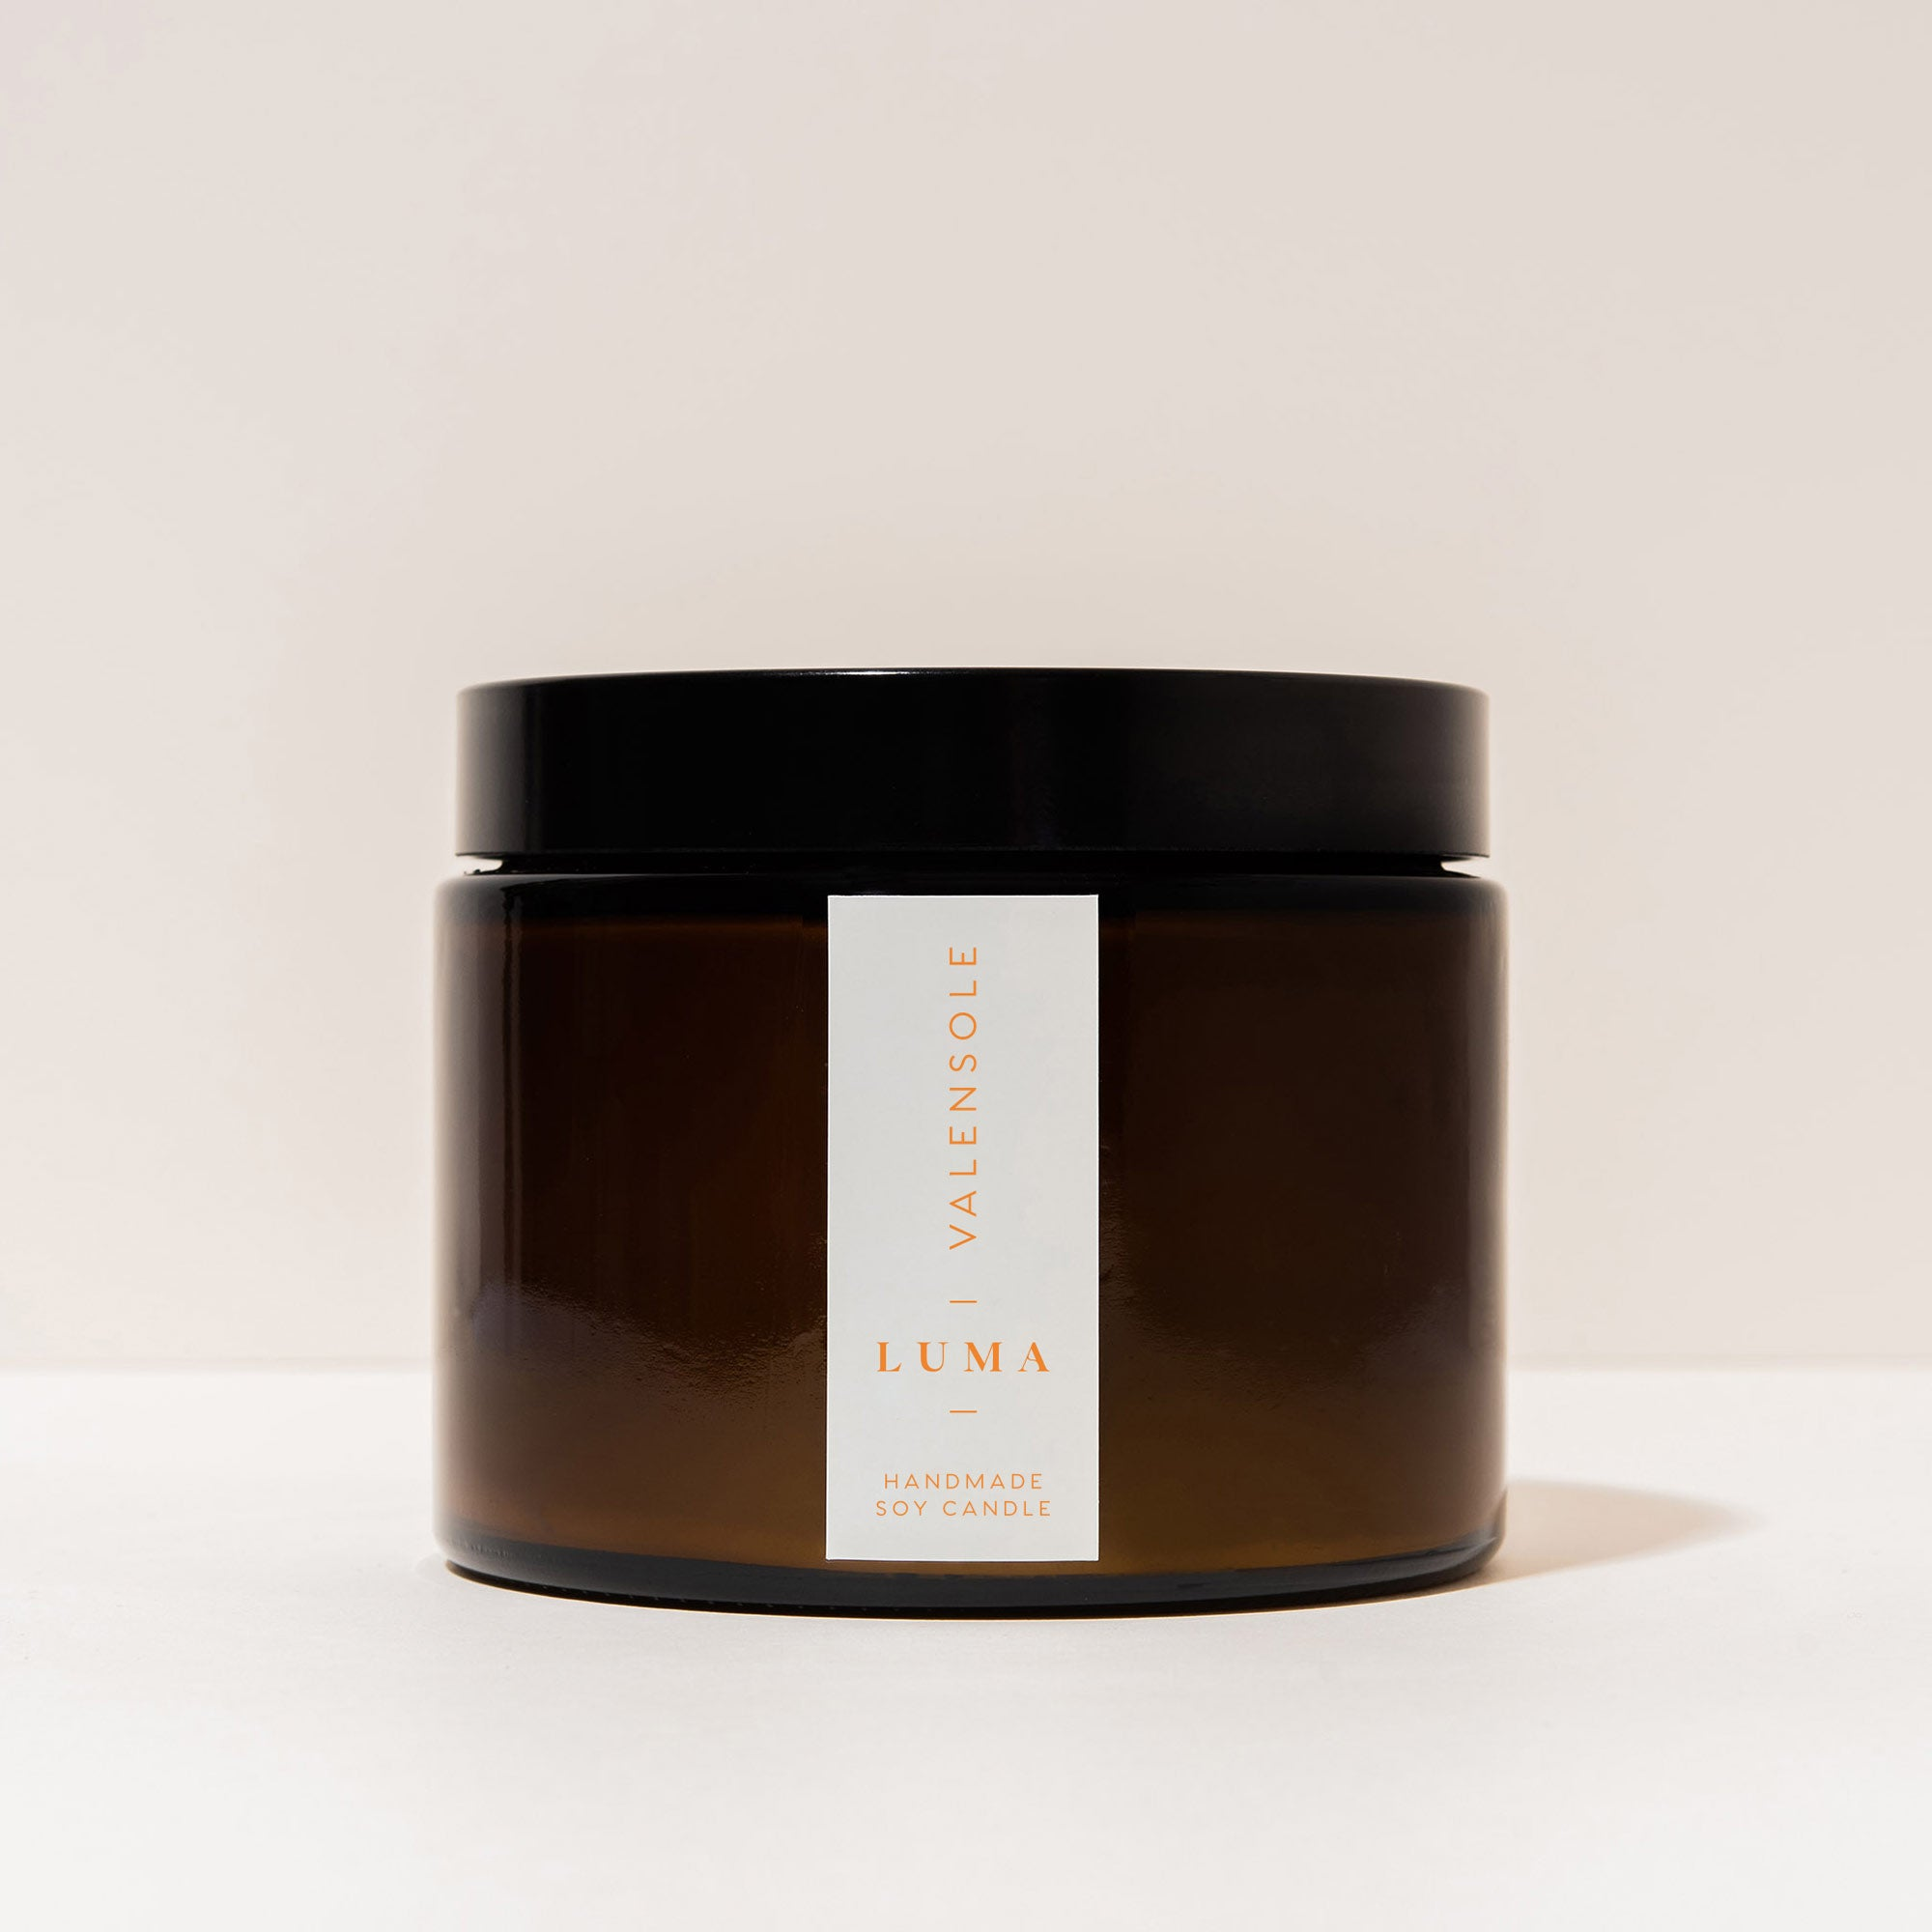 Valensole | Handmade Soy Wax Candle - Luma Candles